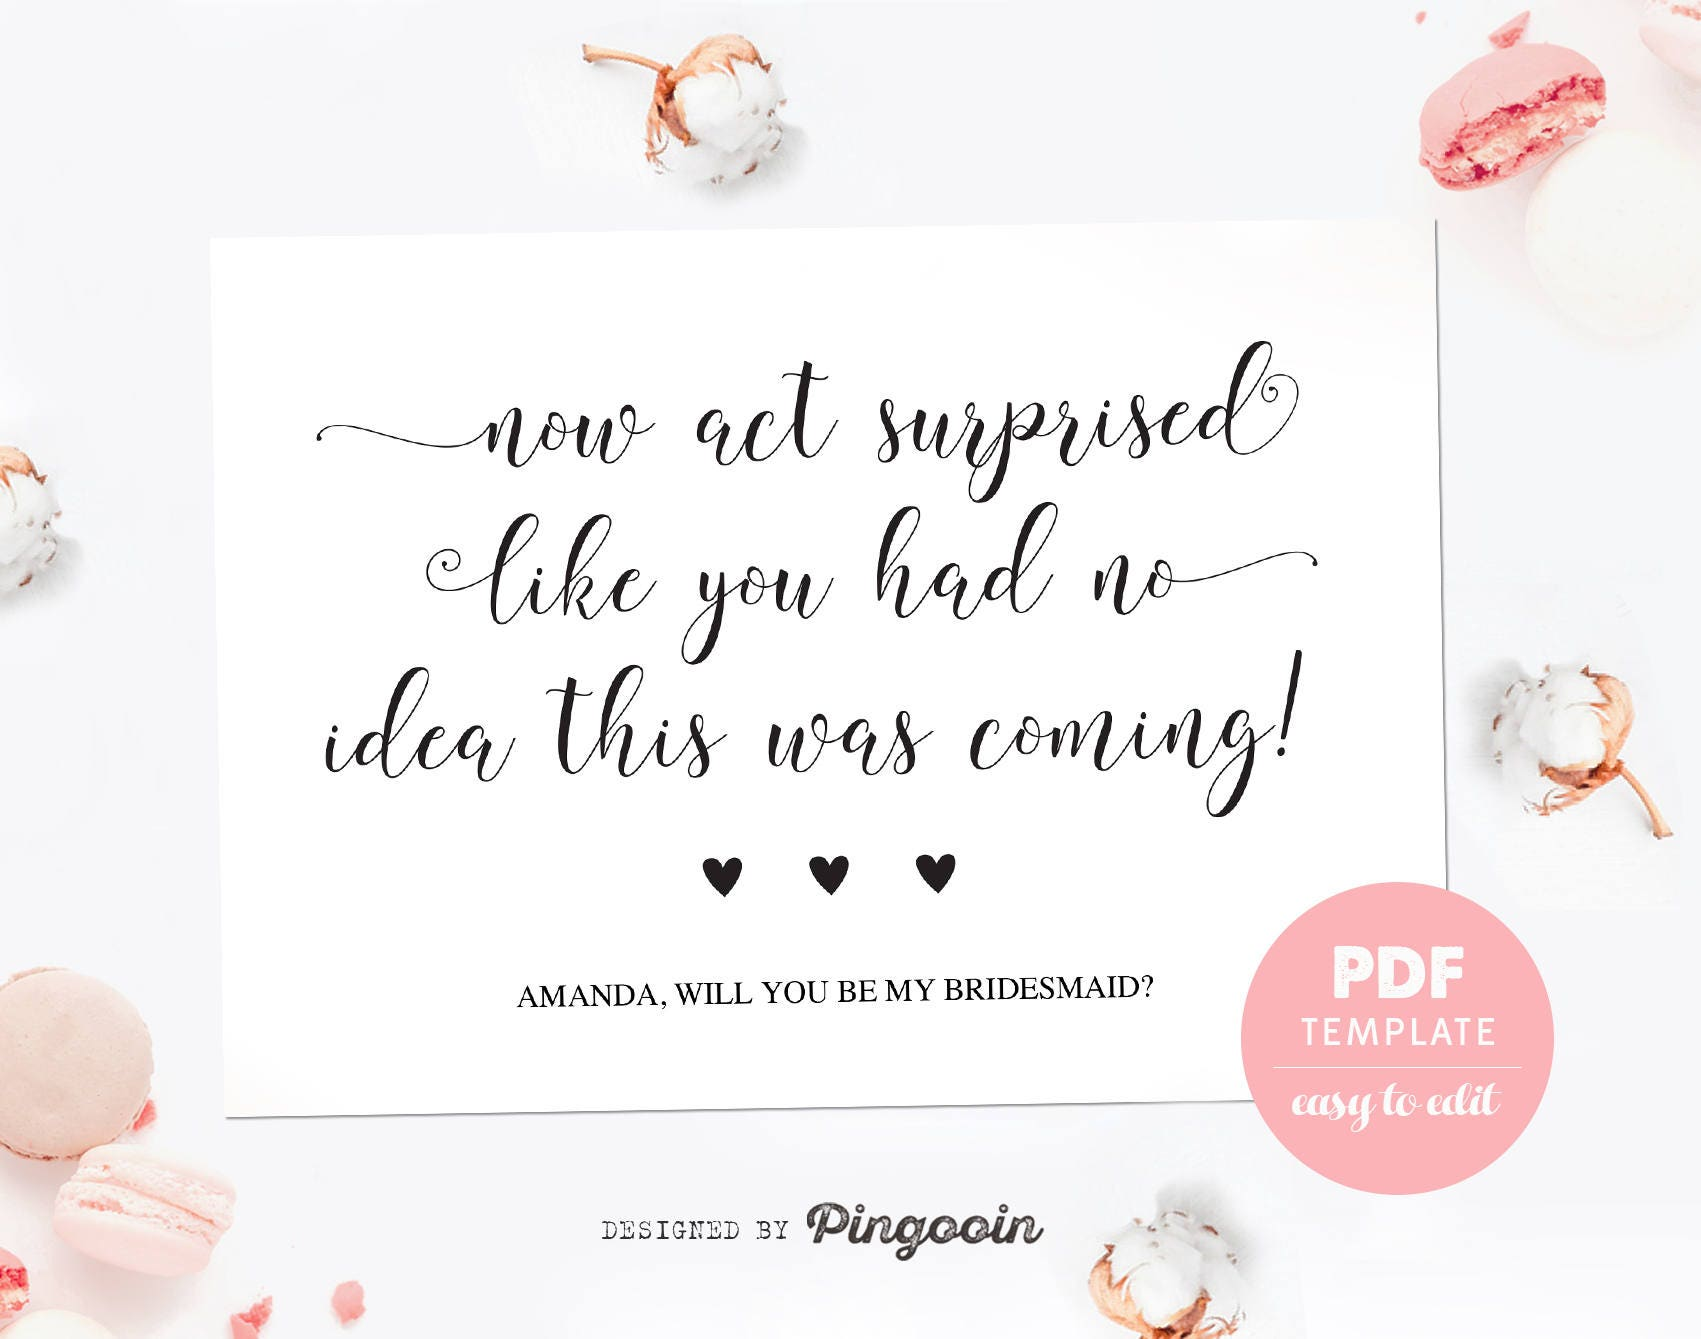 photograph about Free Printable Bridesmaid Proposal named Bridesmaid proposal card. Amusing bridesmaid template card. Designed of honor card. Bridesmaid proposal PDF template for fast down load. BMP006